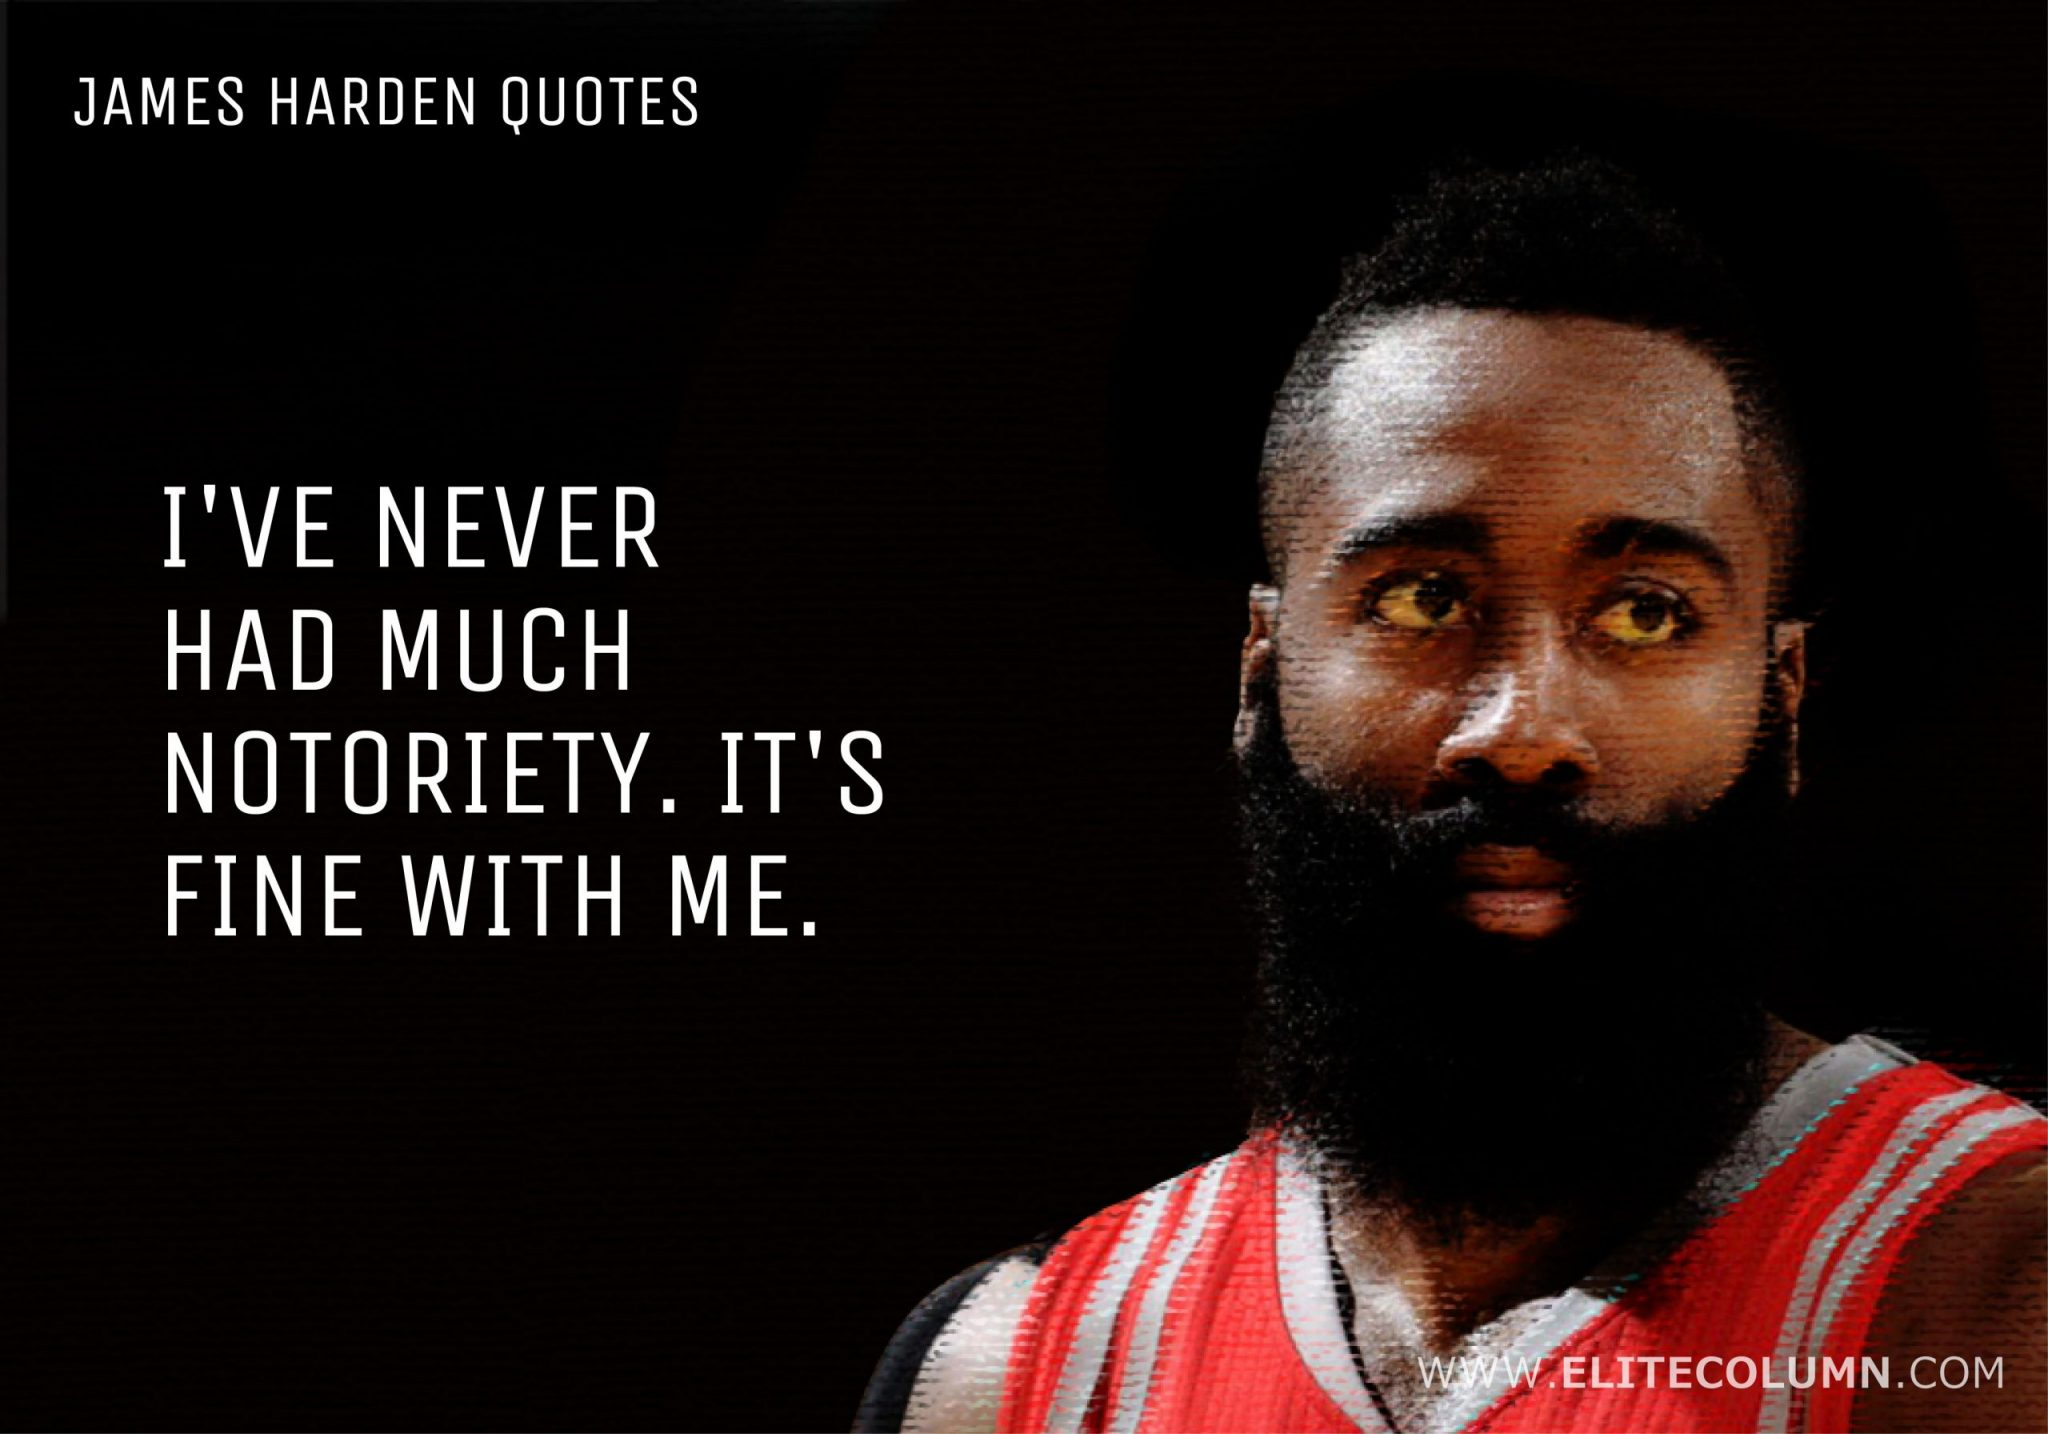 James Harden Quotes (8)